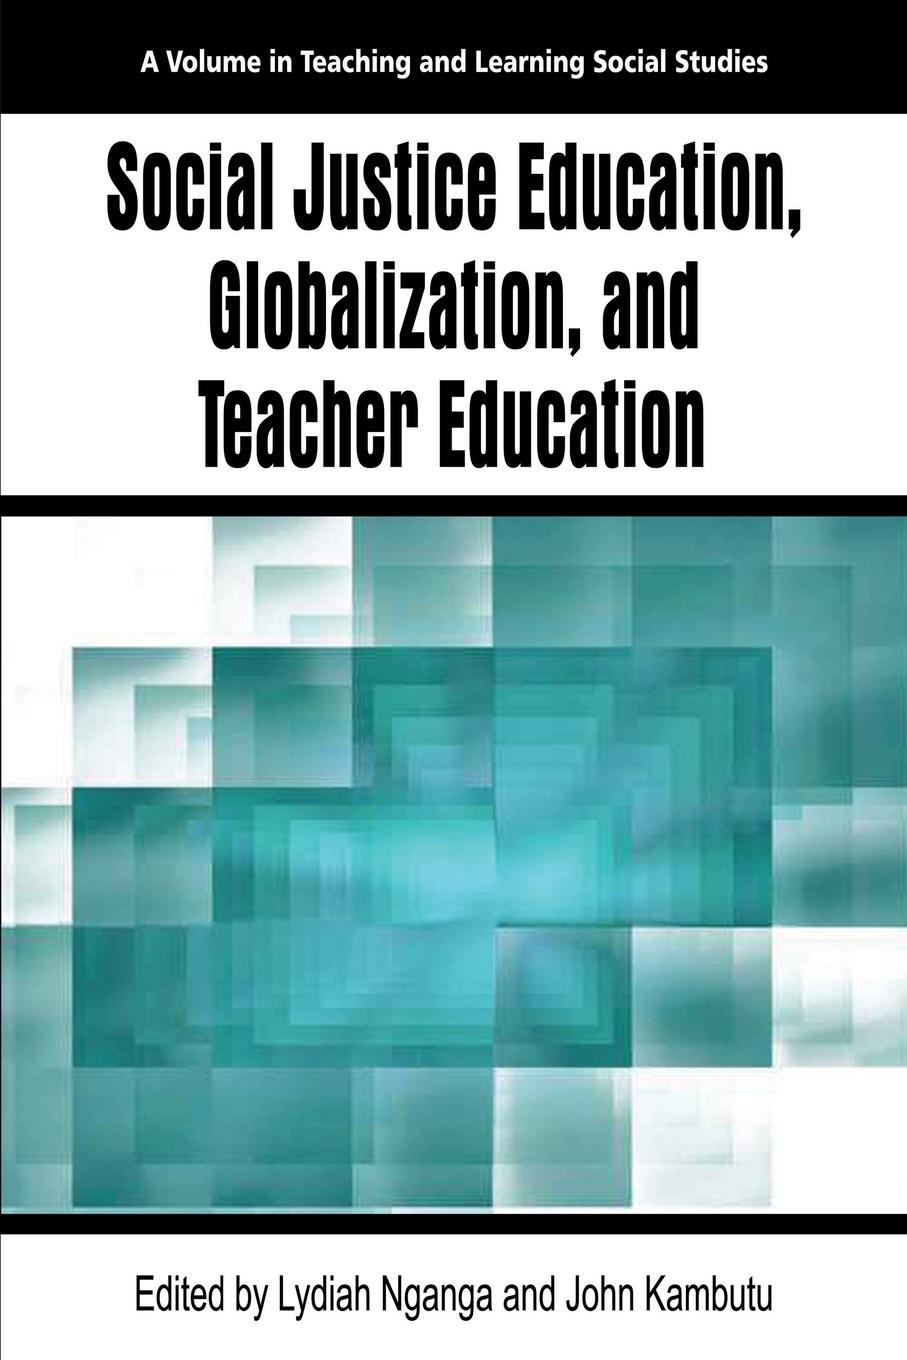 Social Justice Education, Globalization, and Teacher Education mathematics teacher education in the public interest equity and social justice